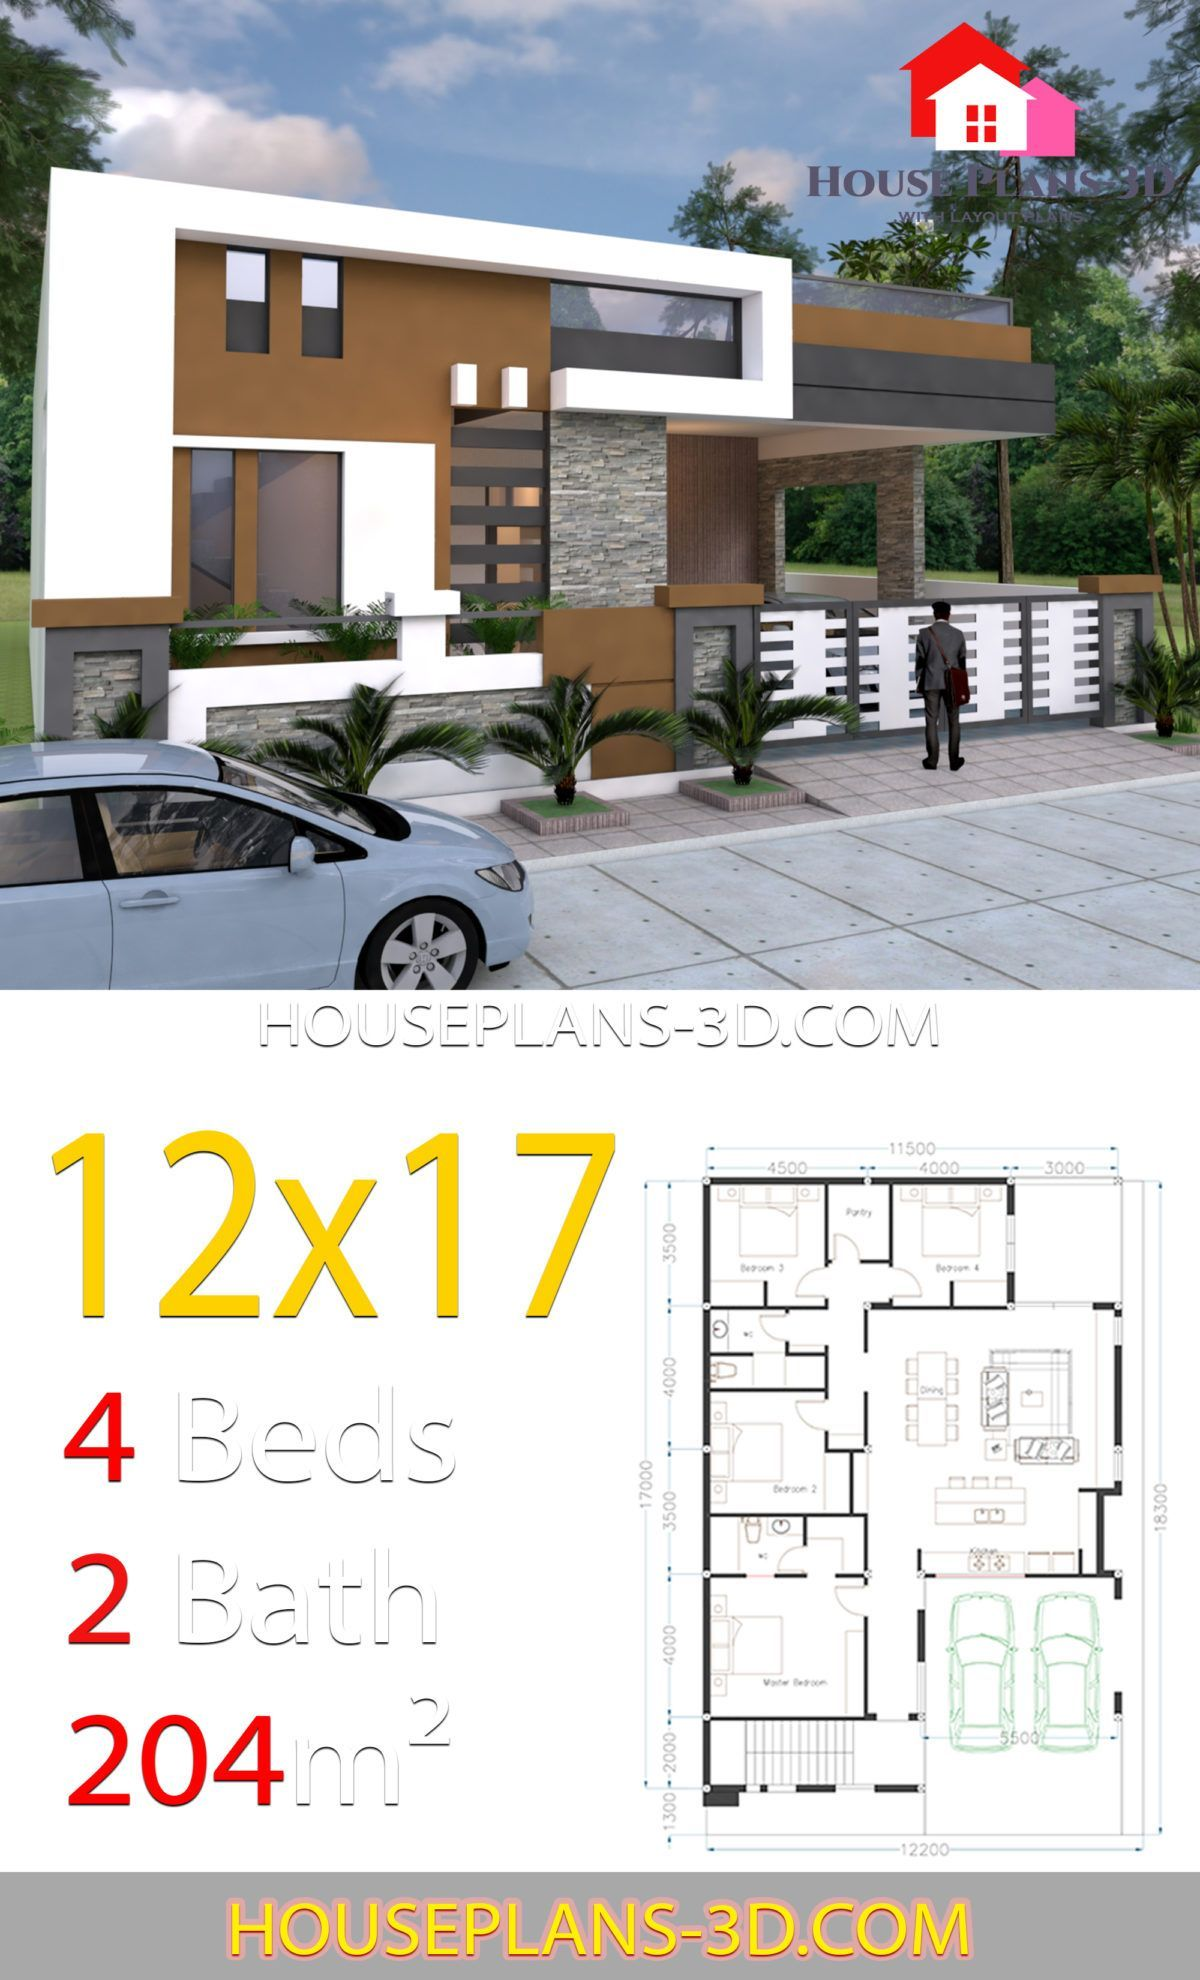 House Design 12x17 With 4 Bedroom Terrace Roof House Plans 3d 12x17 Bedroom Bedroomter In 2020 House Construction Plan House Plans Model House Plan